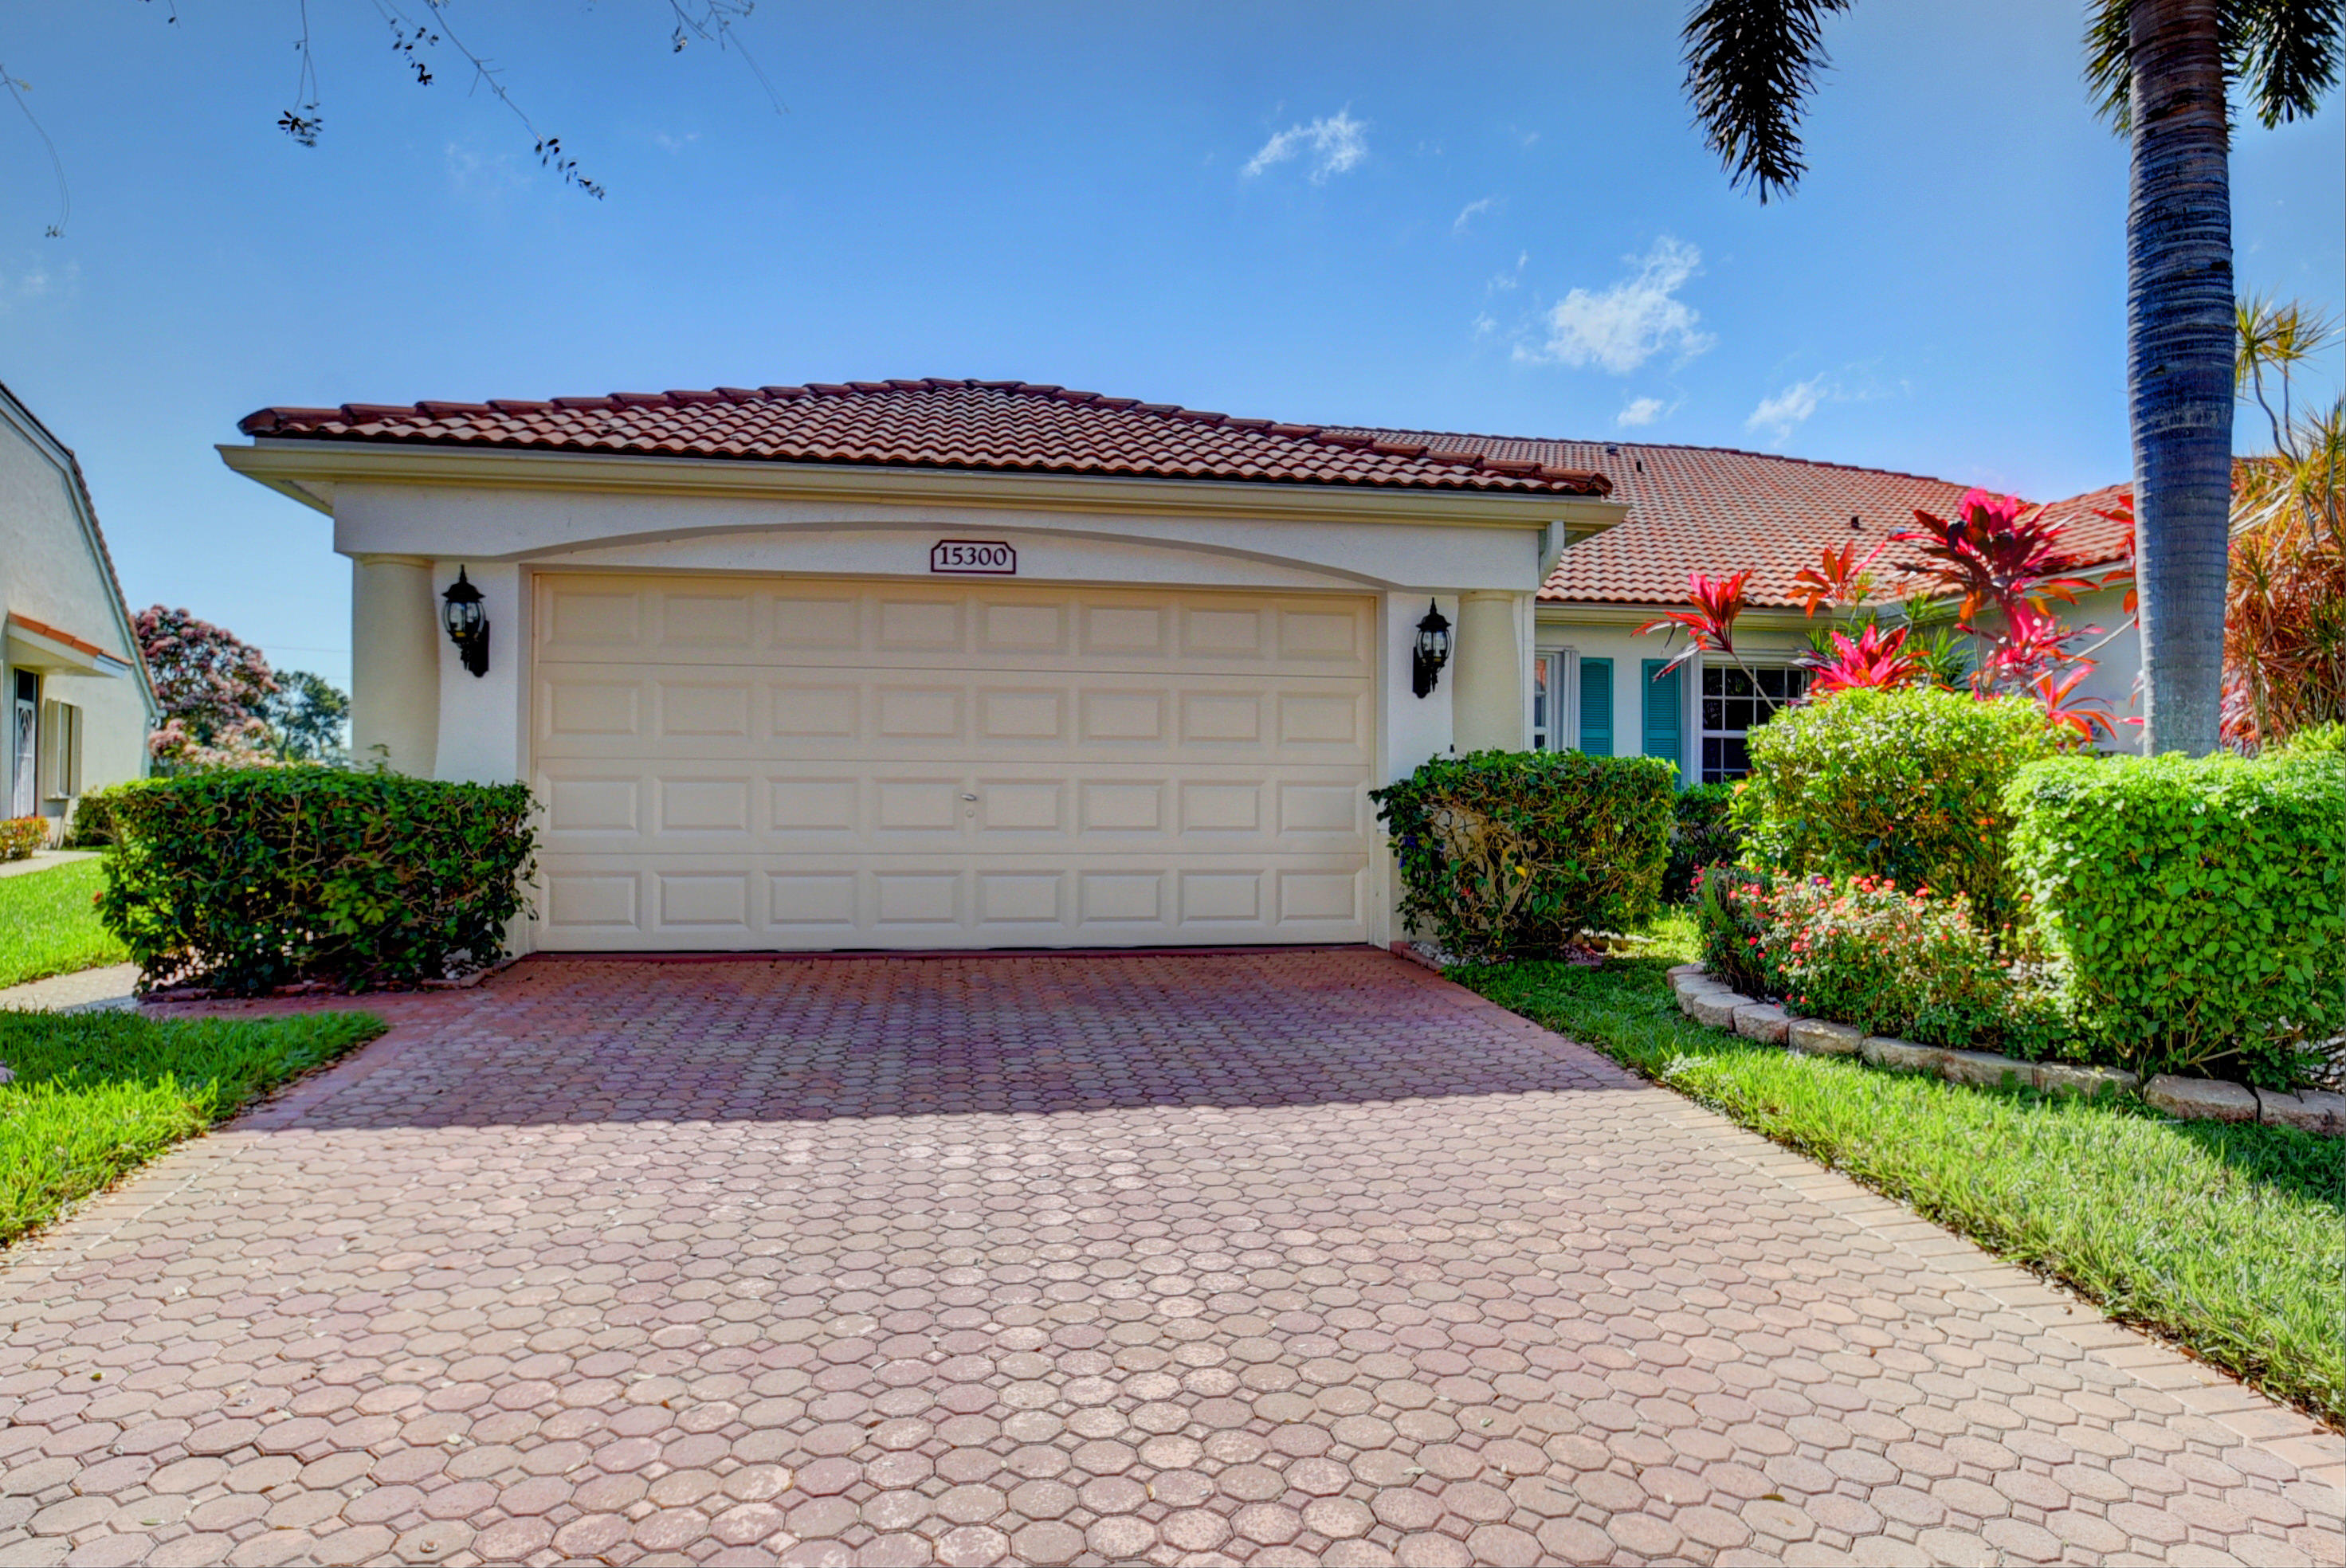 FLORAL LAKES 2 home 15300 Lake Wisteria Road Delray Beach FL 33484